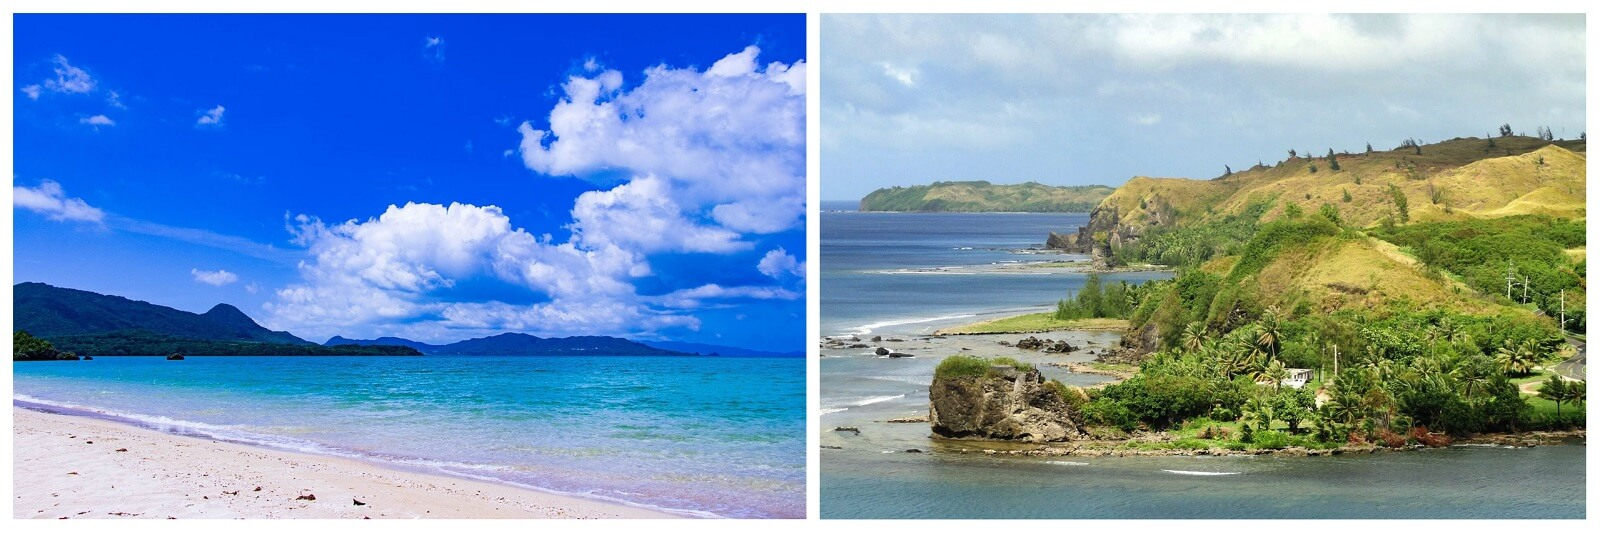 COVID-19 Island Insights Series: The Okinawa Islands and Guam